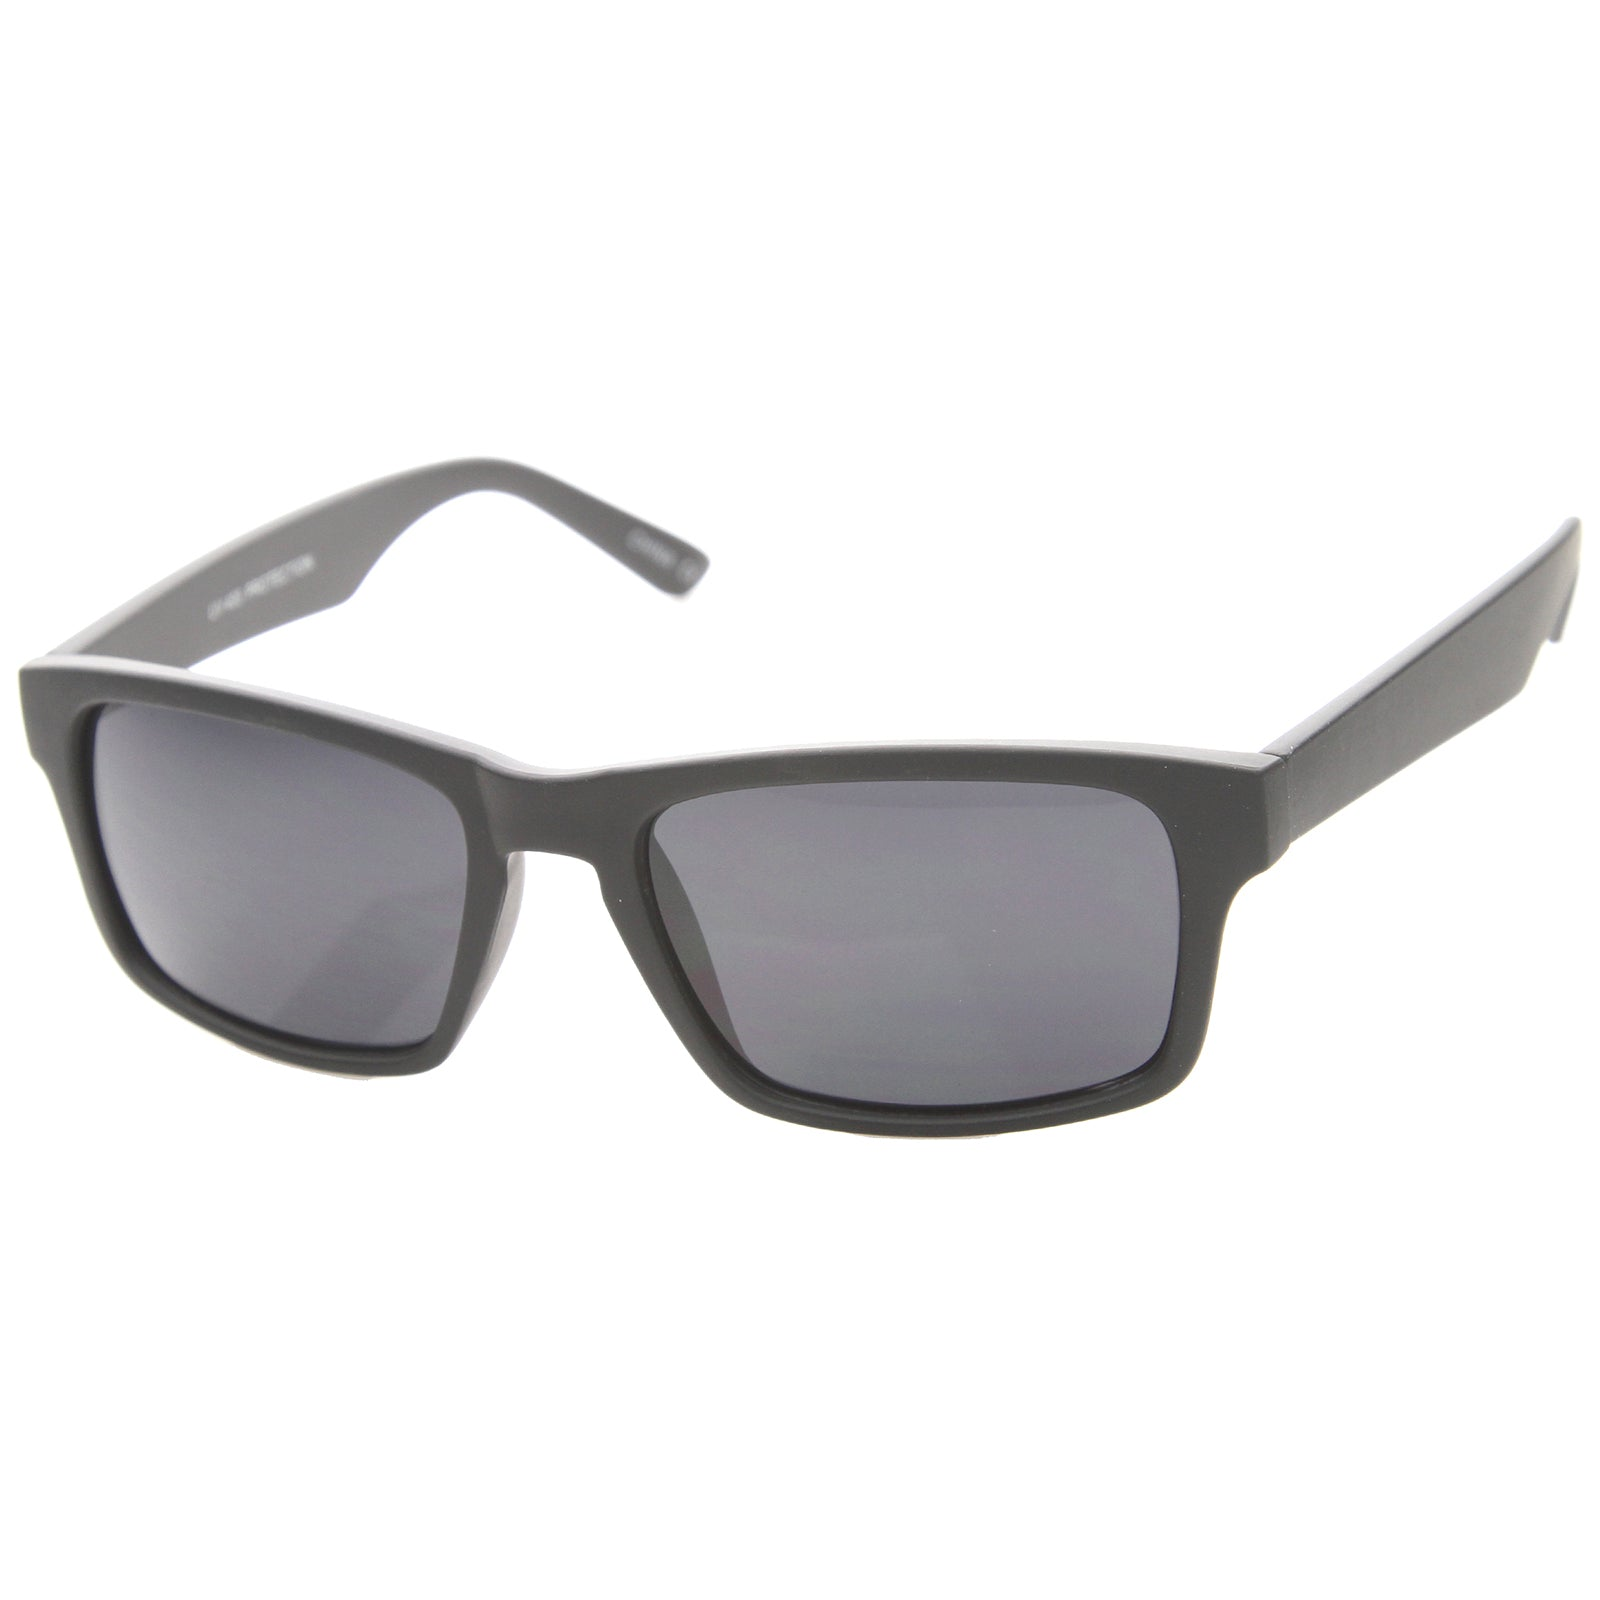 Mens Horn Rimmed Sunglasses With UV400 Protected Composite Lens - sunglass.la - 2